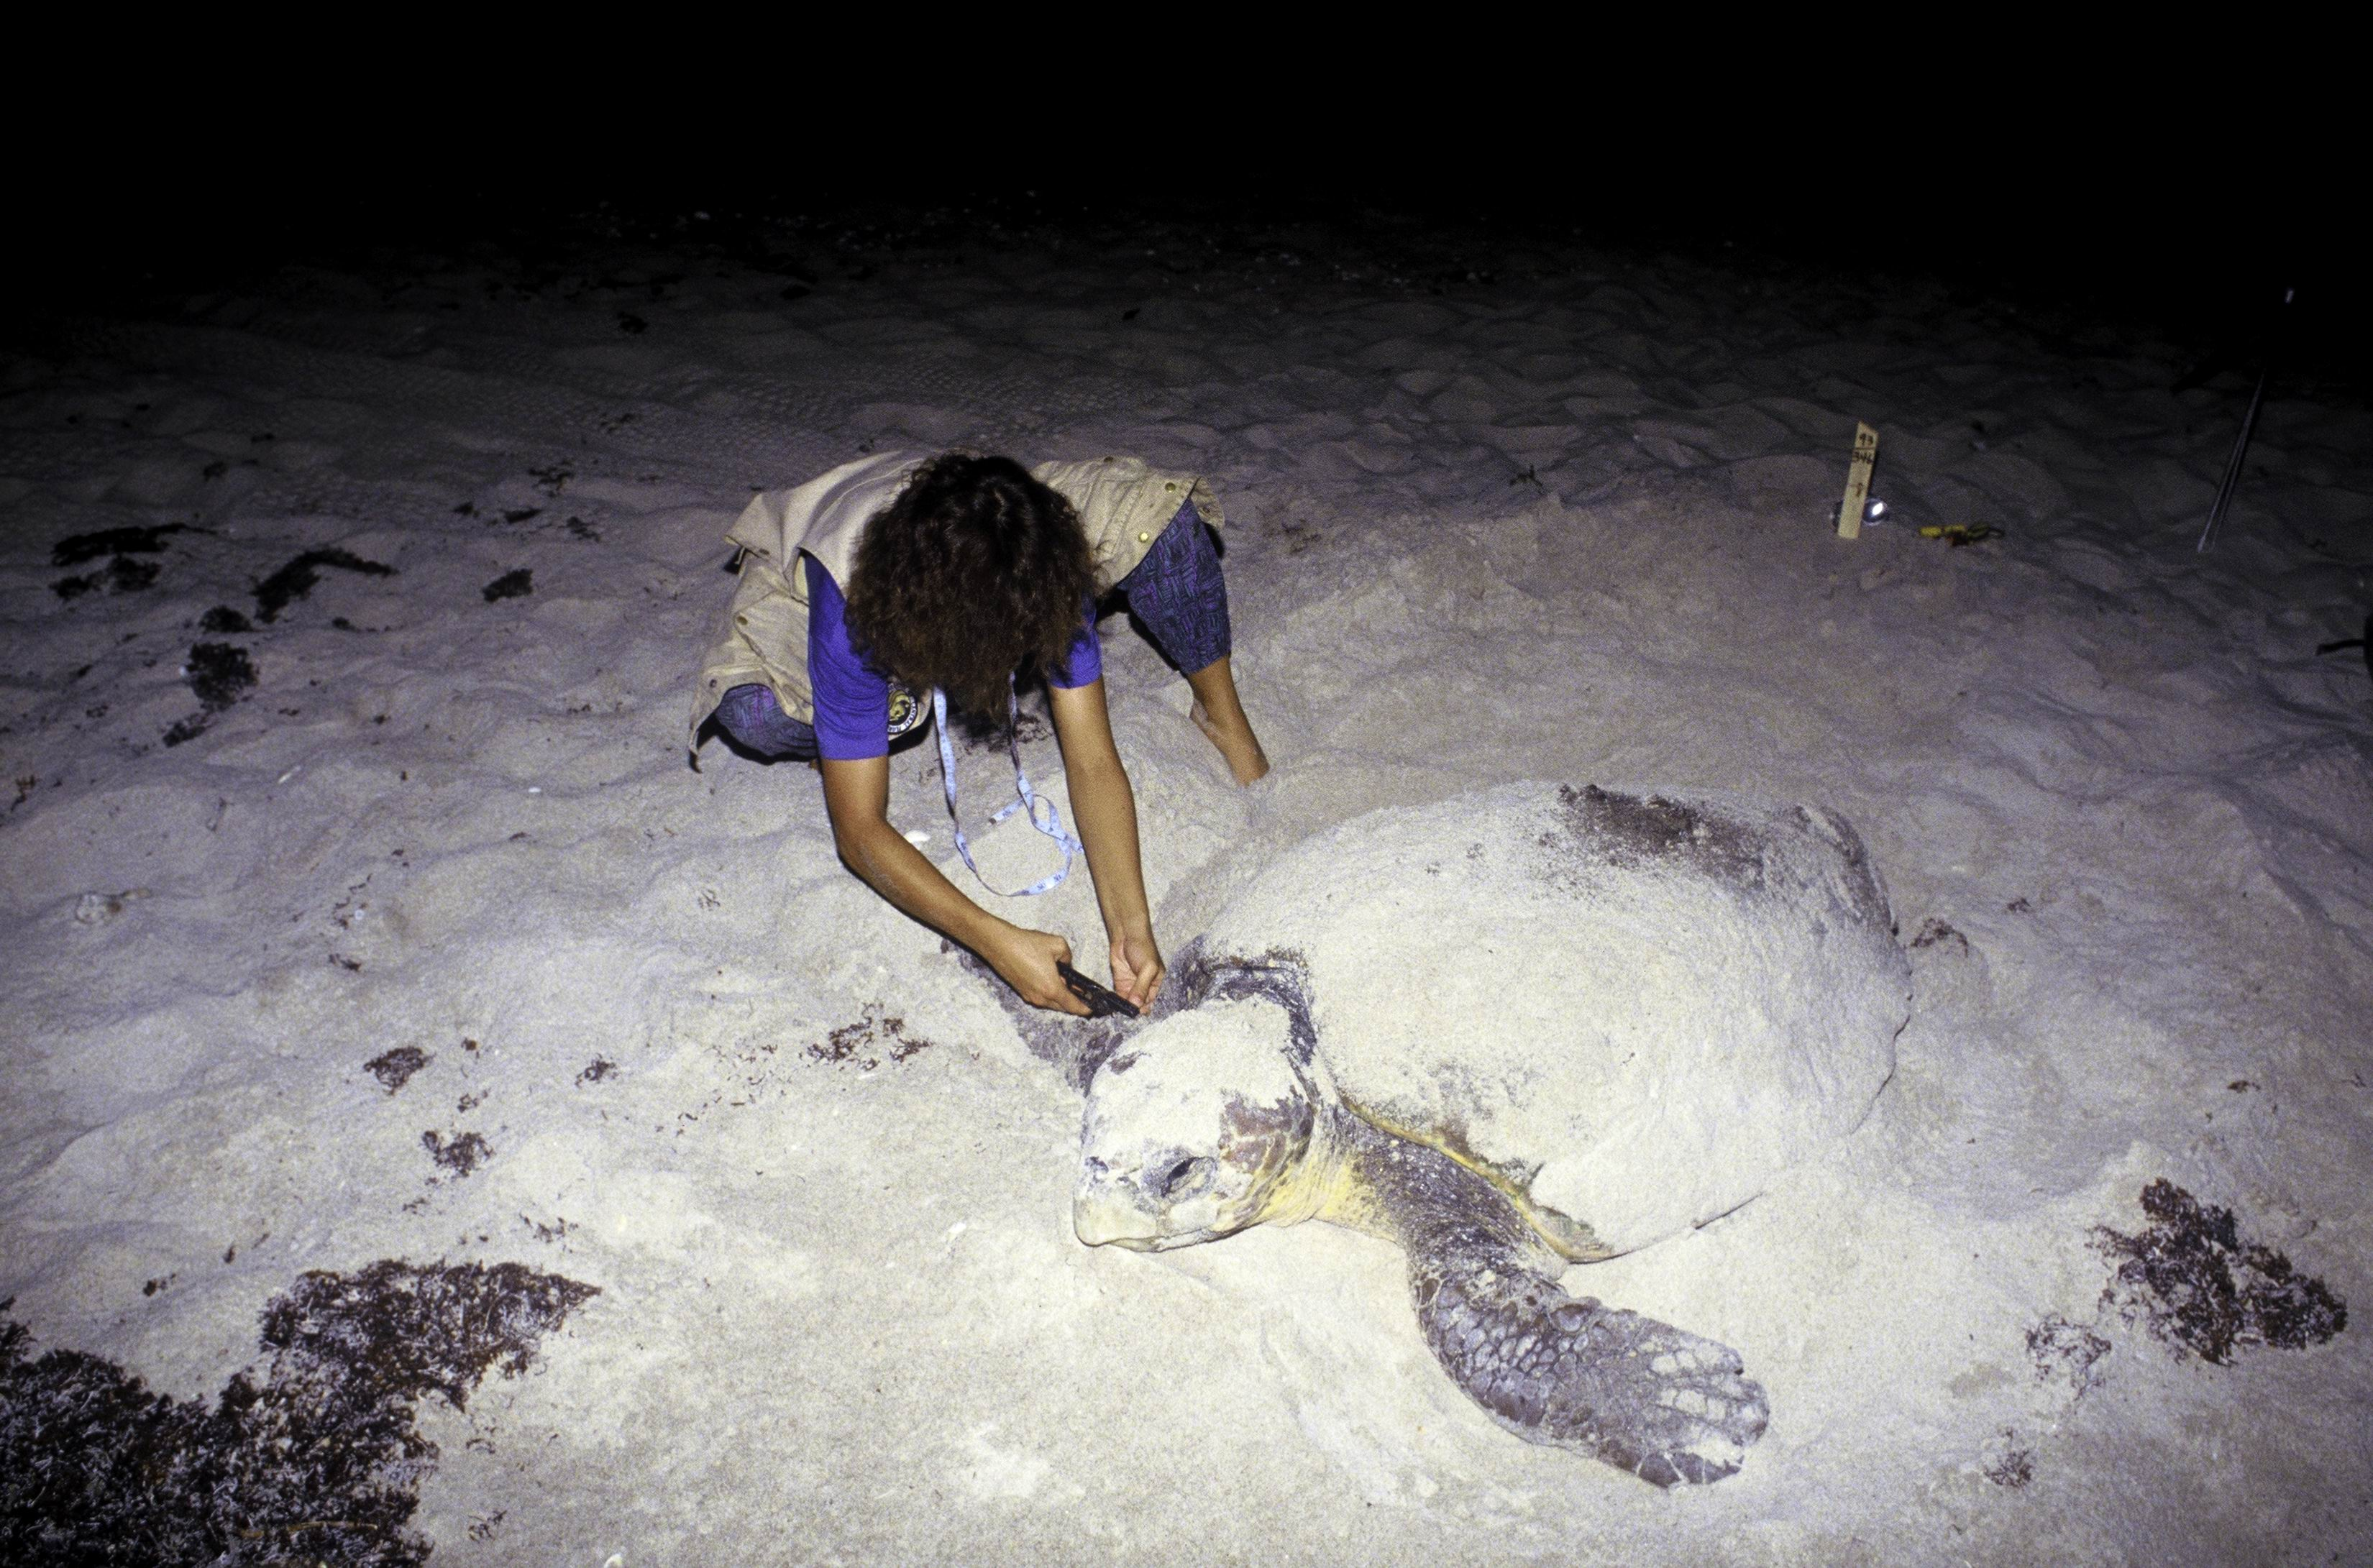 caretta dating site Local obituary notices in caretta, wv  caretta caretta change city news forums crime dating real-time news jobs obituaries  caretta obituaries local obituary notices in caretta, wv .